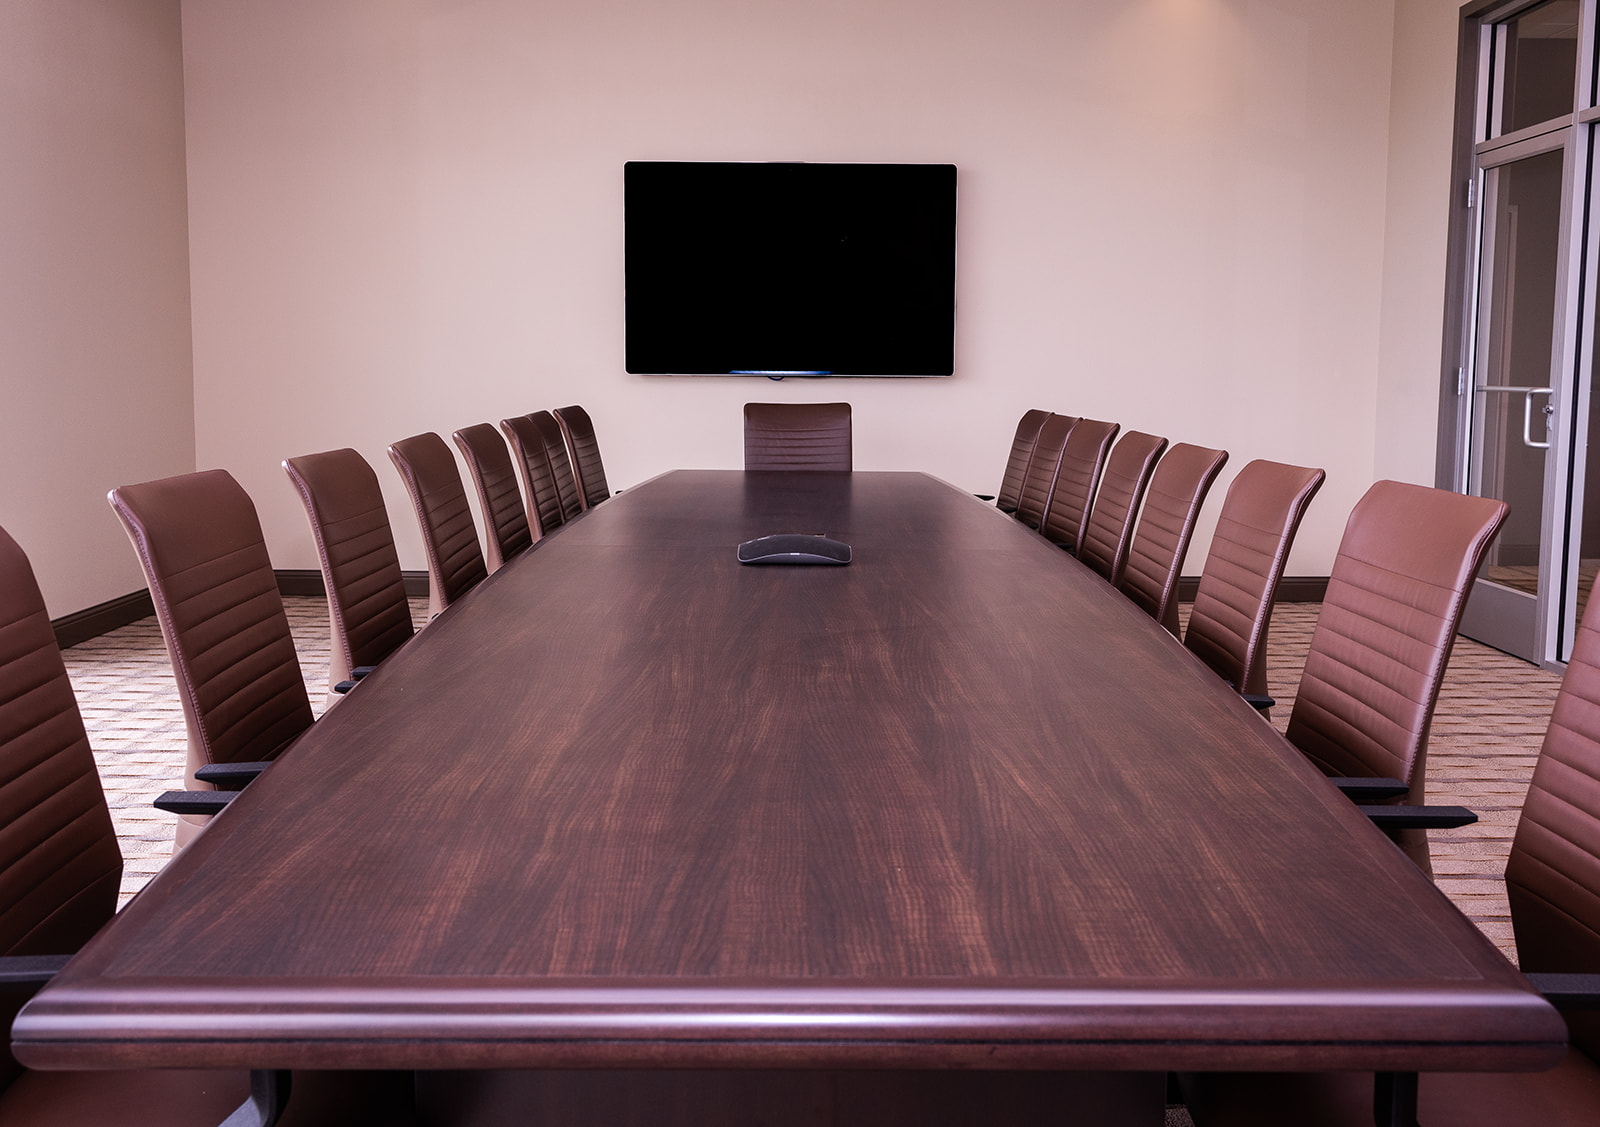 Conference Table by Deskmakers